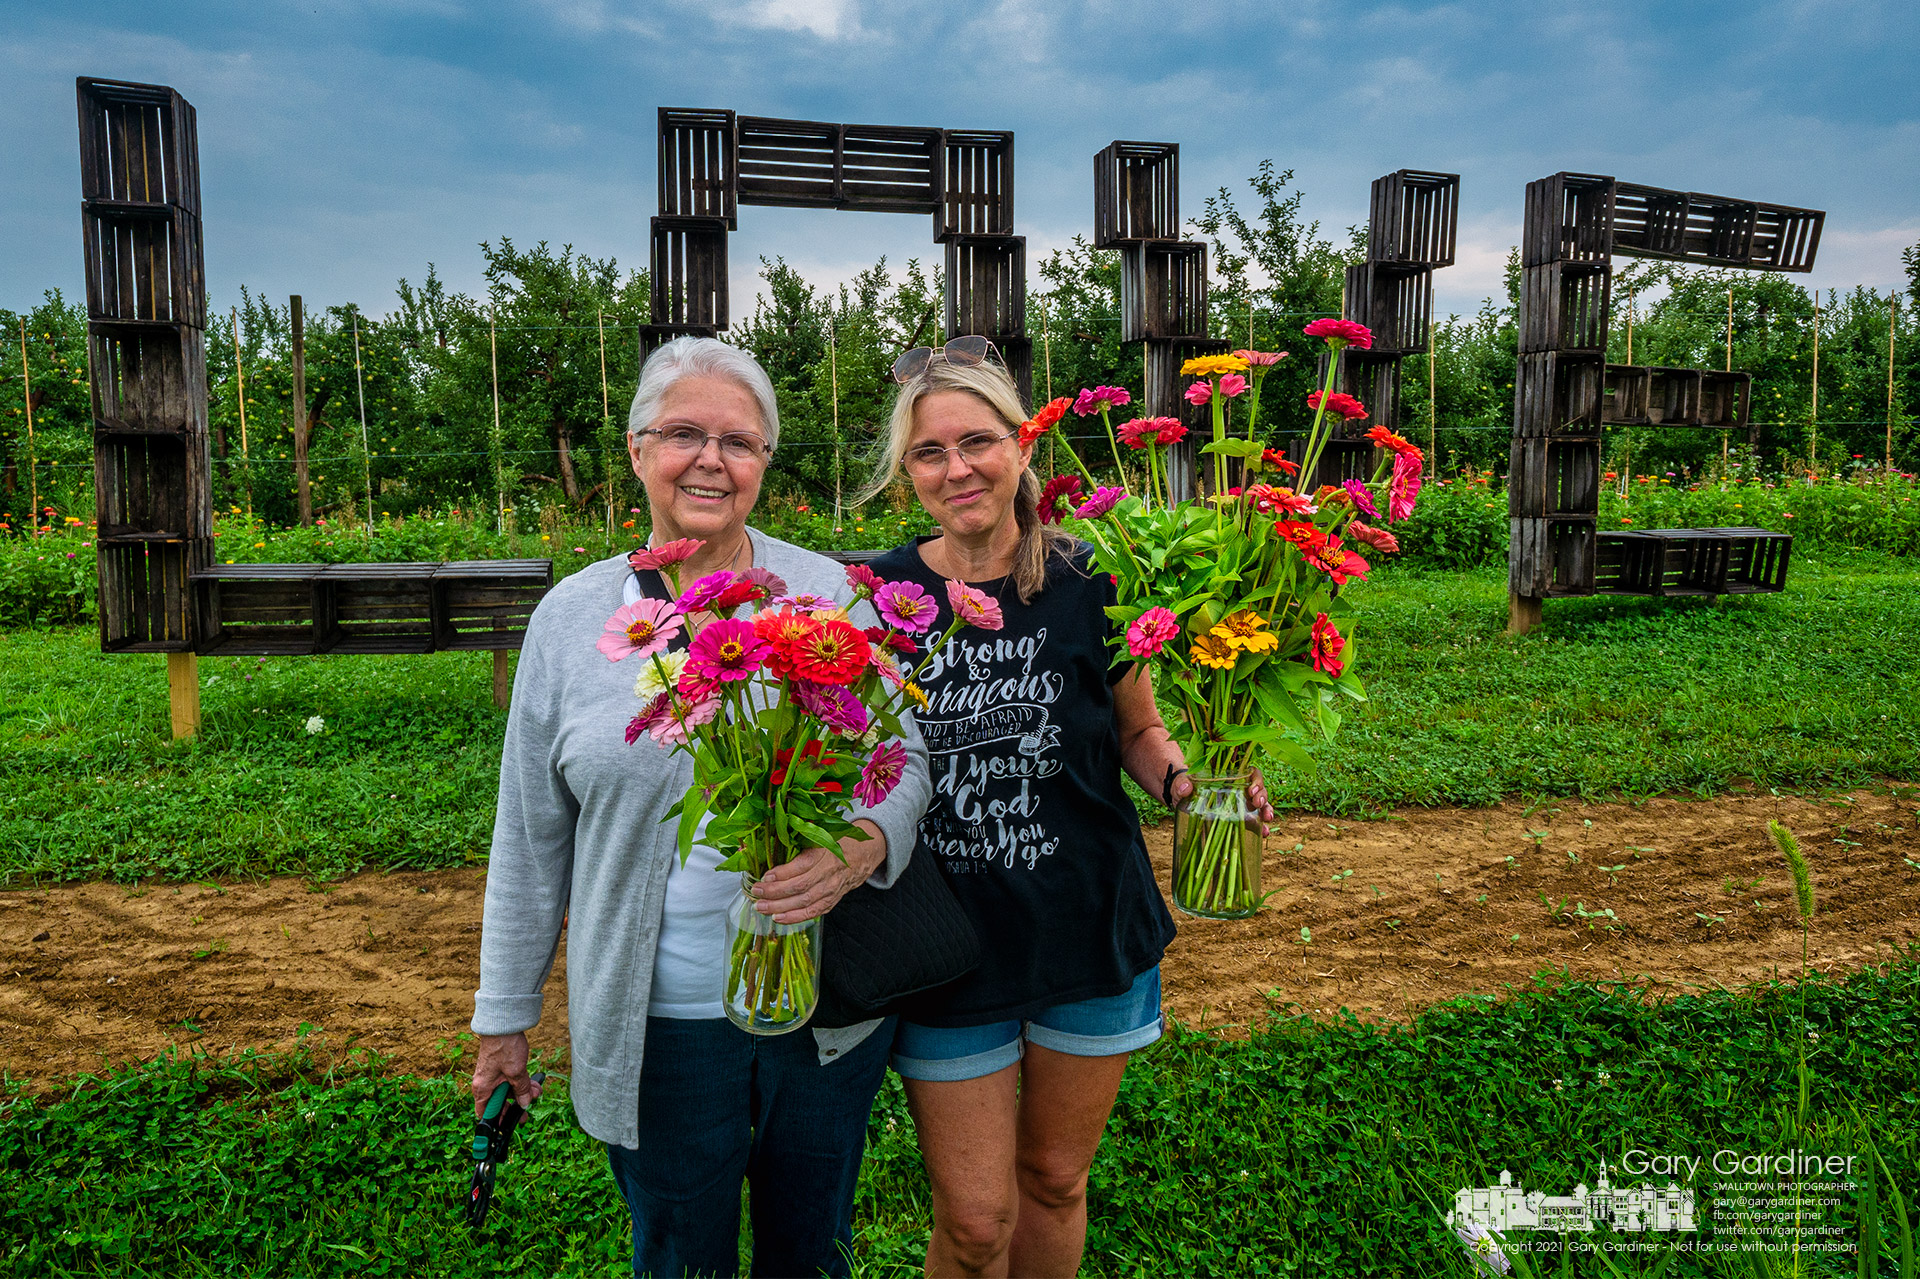 """A mother and daughter pose in front of a """"Love"""" sign sculpted from fruit boxes after having picked flowers at Branstools Orchard in Utica. My Final Photo for July 29, 2021."""